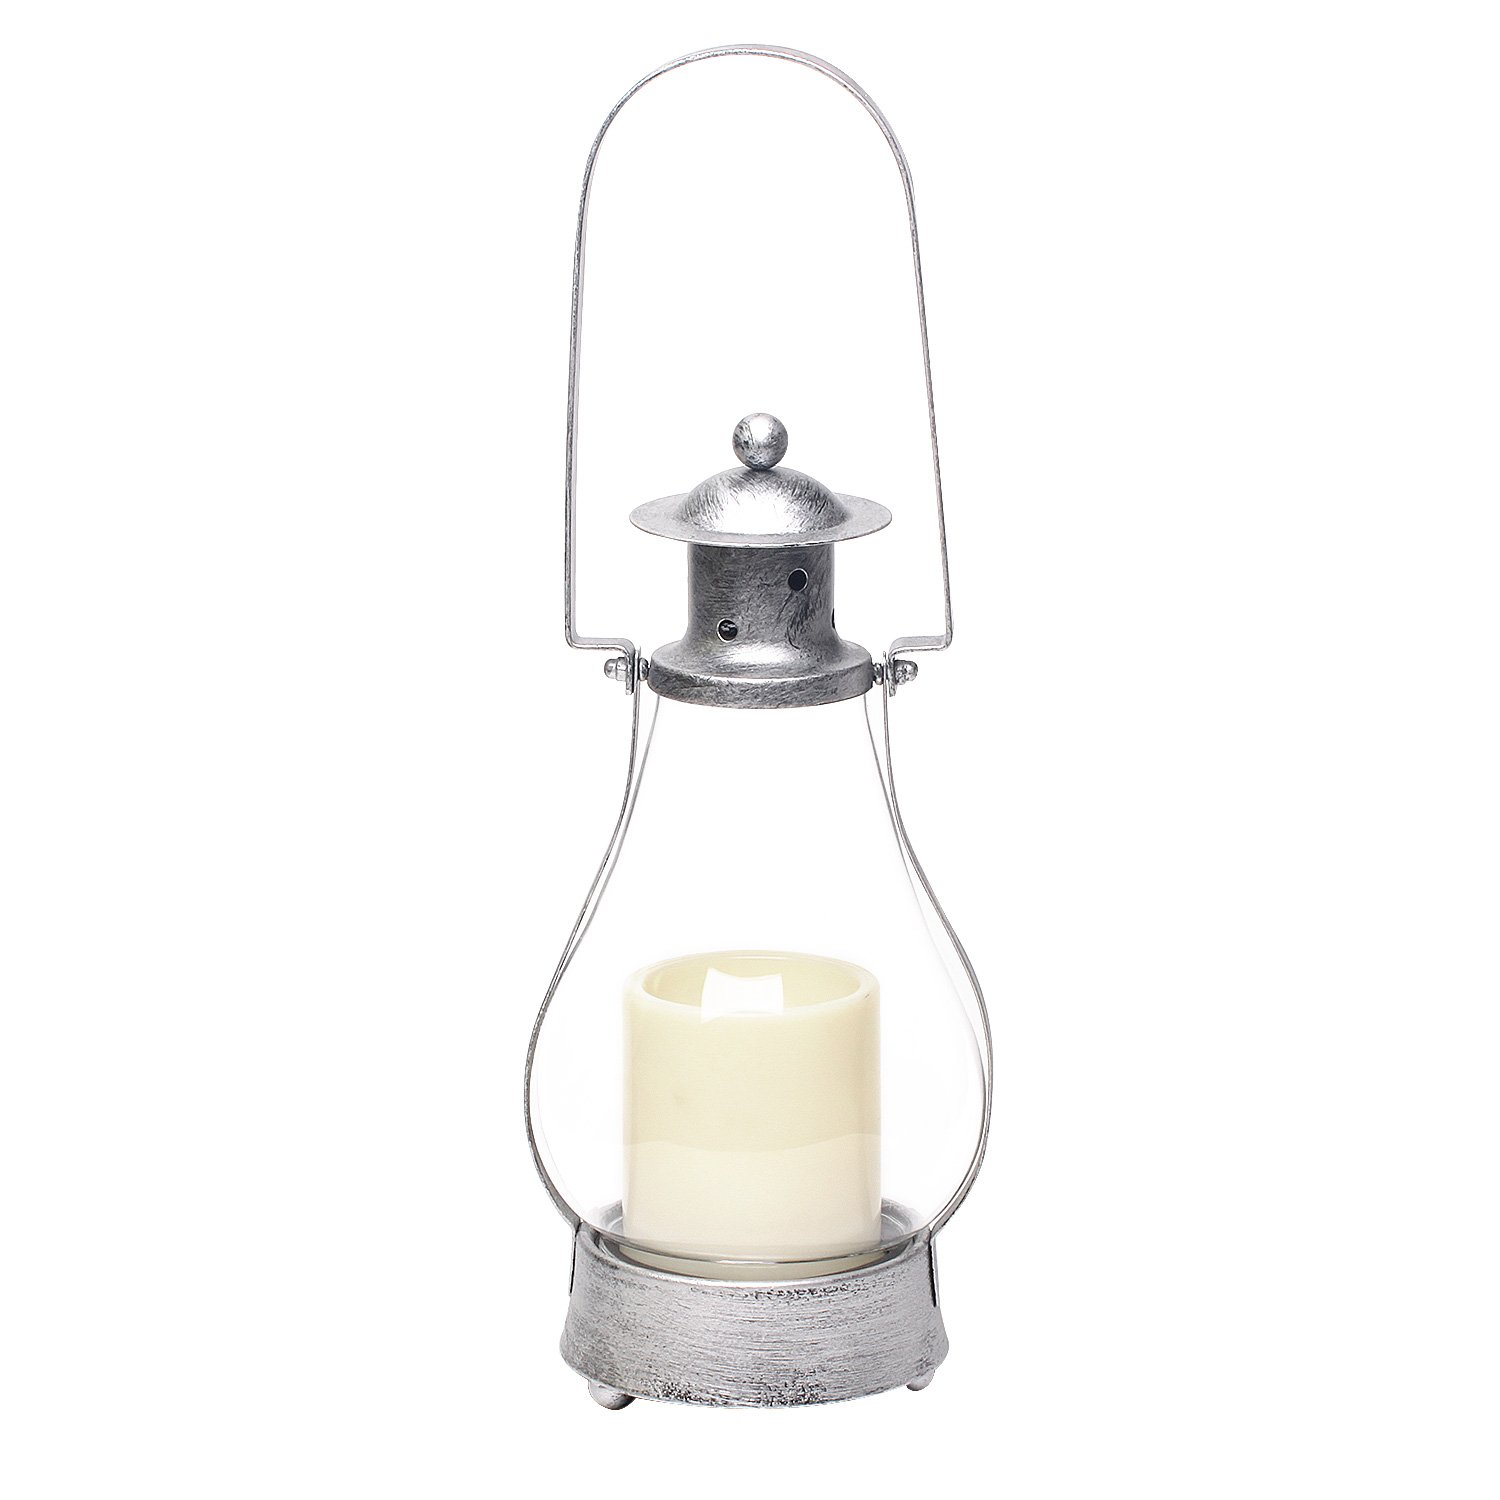 Decorative Hanging Lantern Outdoor/Indoor with Flameless Led candle ,15 inch,4 and 8 Timer, Antique silver